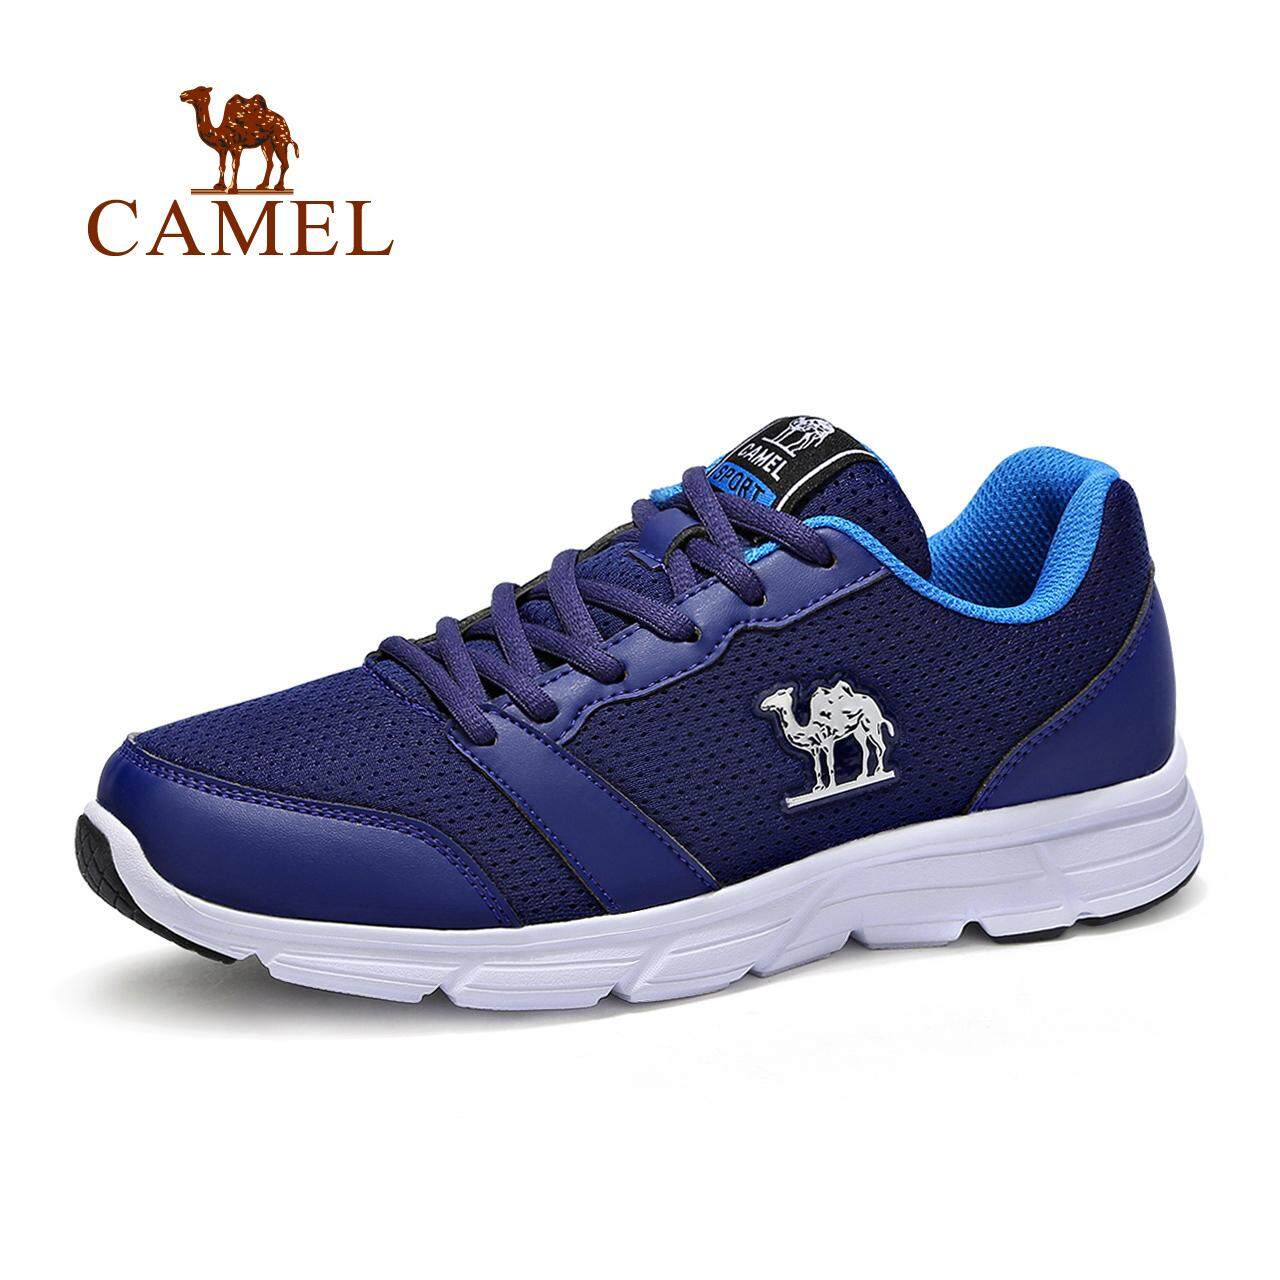 41a064ea145b5 Camel Philippines - Camel Sports Running Shoes for Men for sale ...